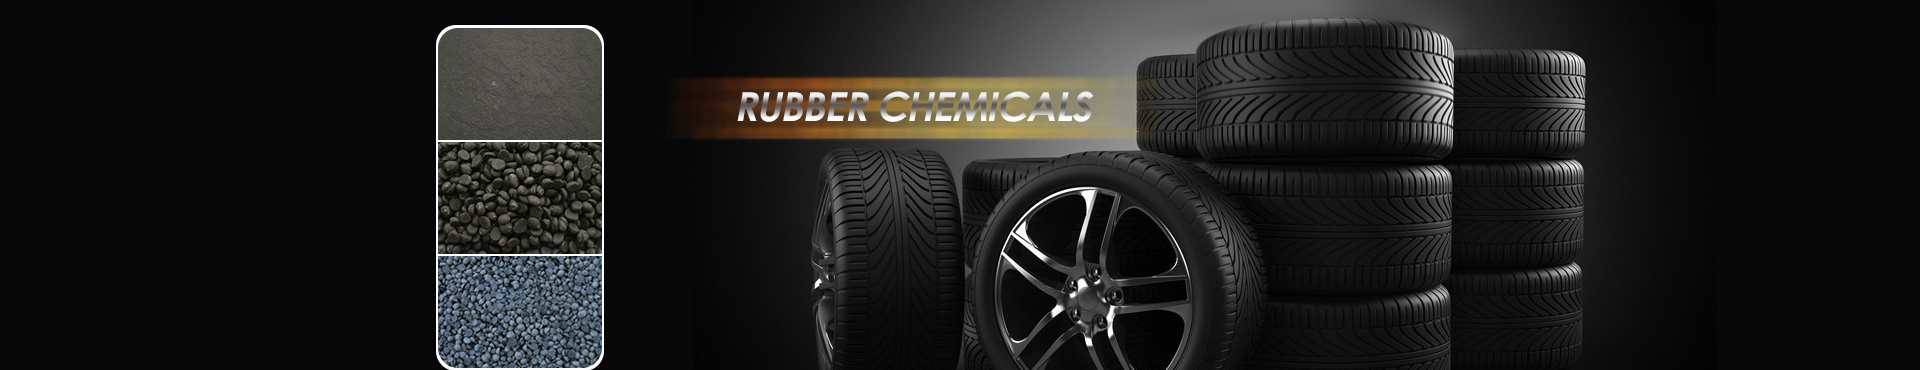 Rubber chemicals agent